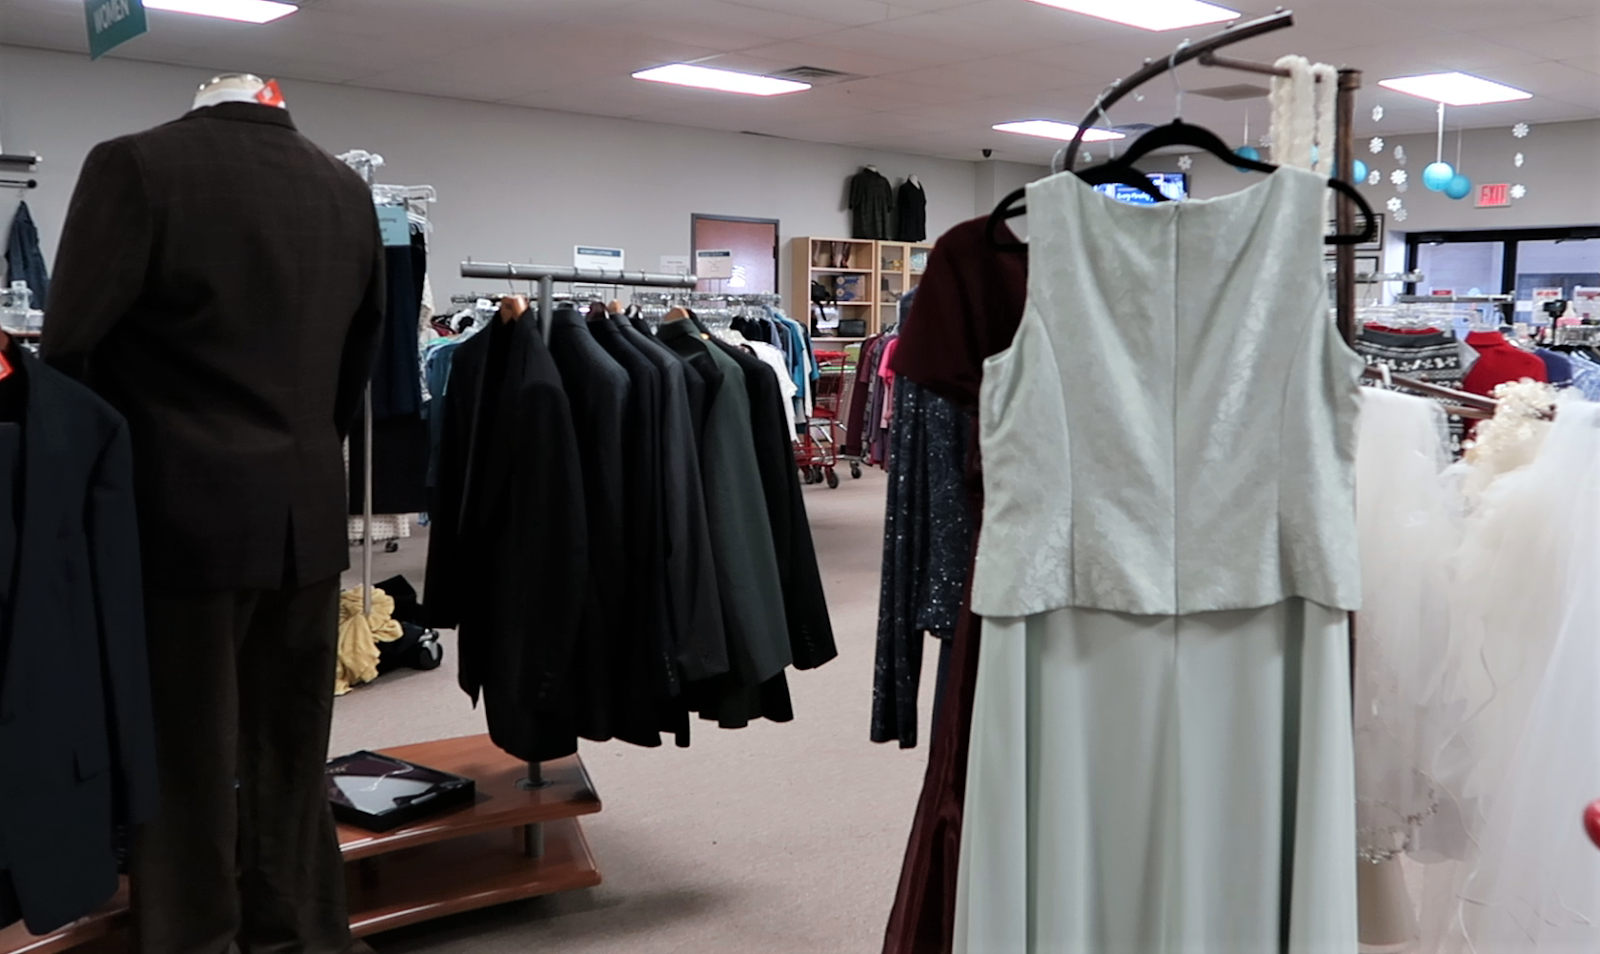 Bridal dresses at the thrift store.So, I was stoked when I walked into the thrift store and found a few bridesmaids and matron dresses. And can you believe nothing was over 40 dollars? But just as my luck runs, there was nothing in my size or style that was purple.